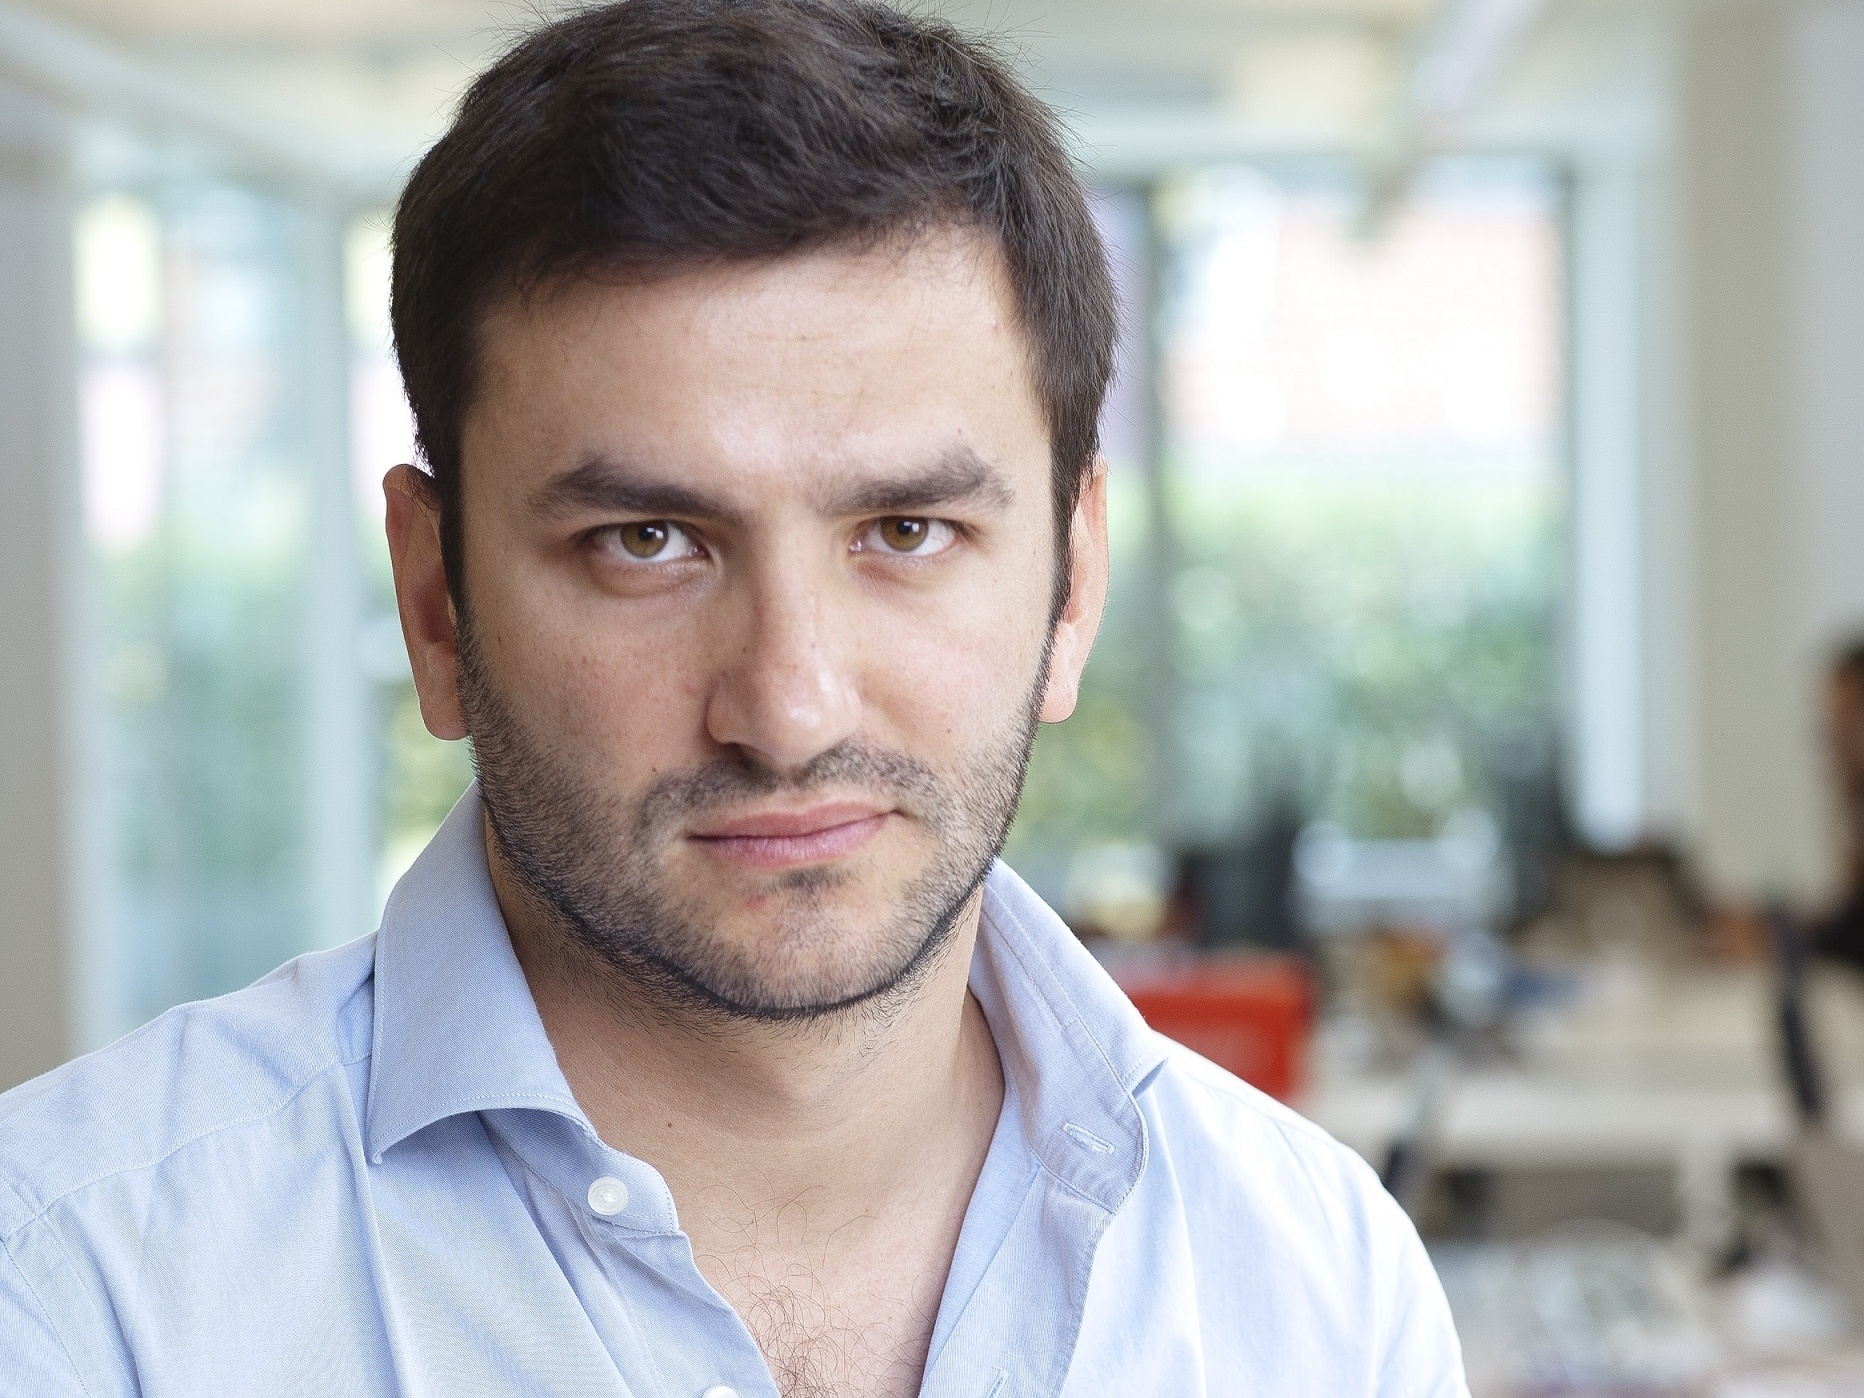 Alberto Dalmasso, co-founder e CEO di Satispay